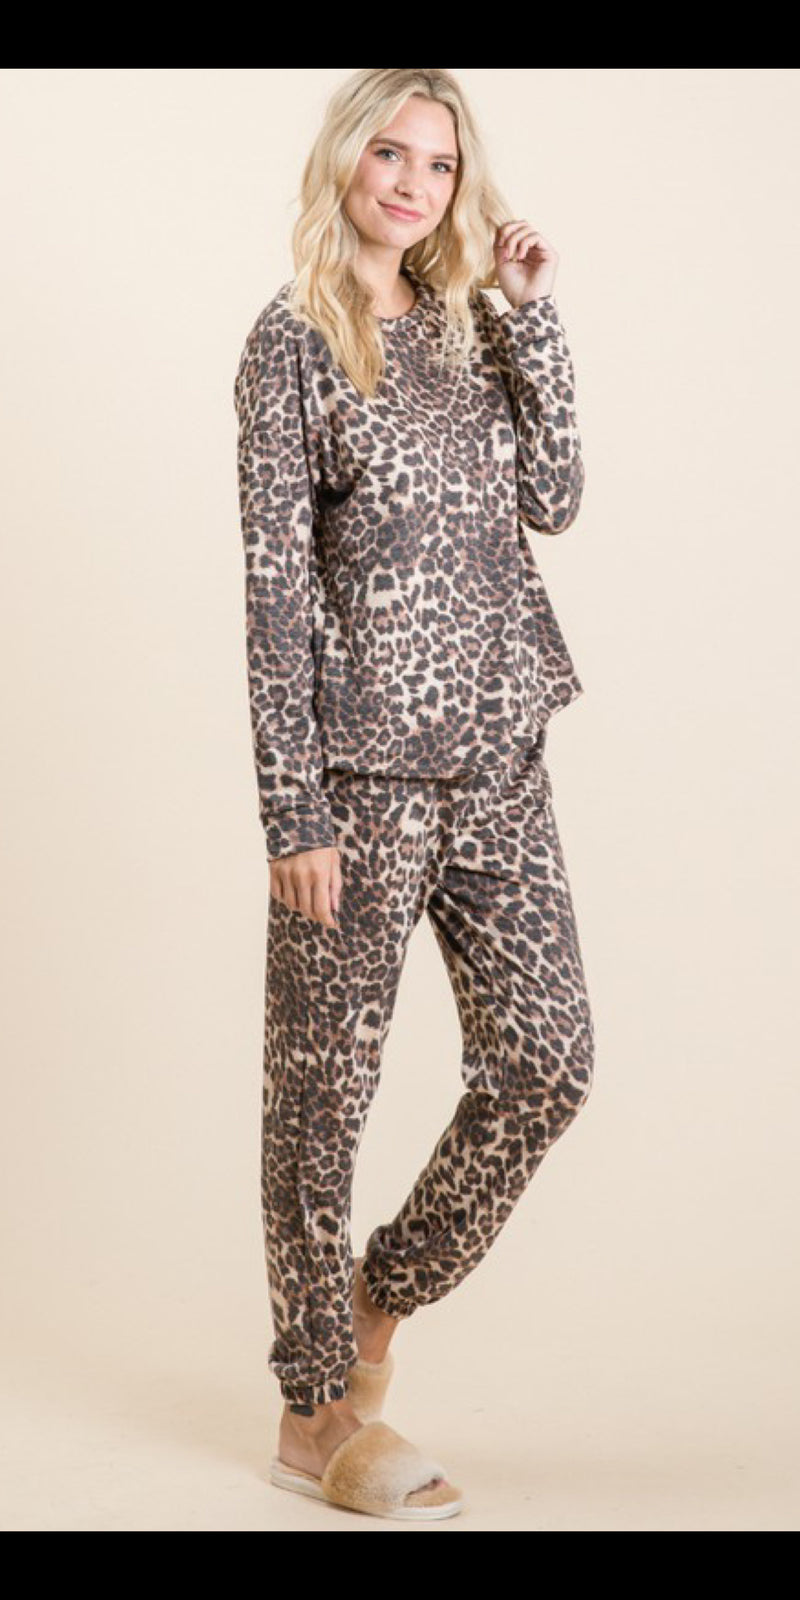 Leopard Lounge Wear Set - Also in Plus Size